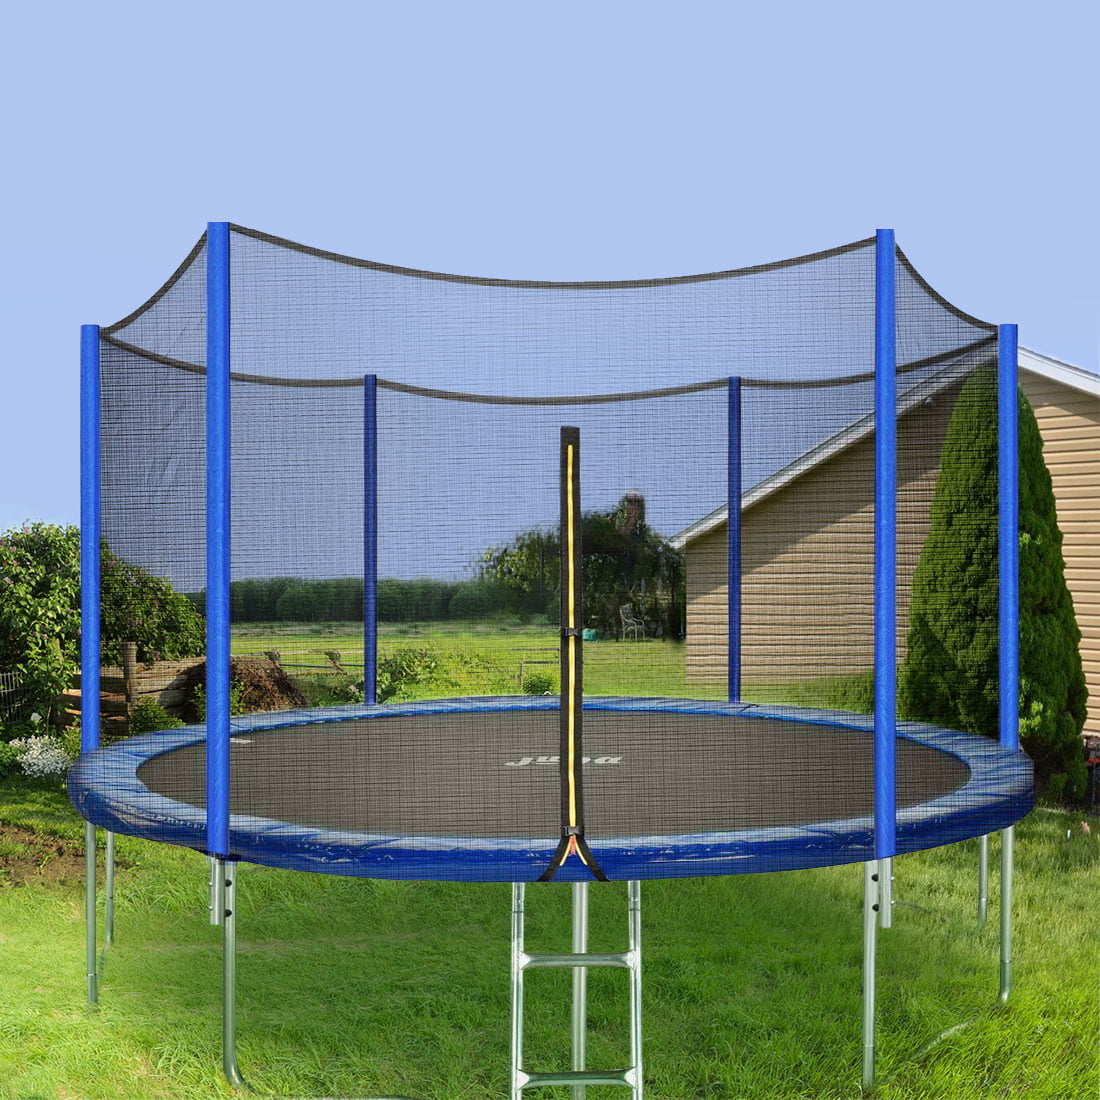 Jupa 15FT Trampoline With Enclosure, Backyard Trampoline